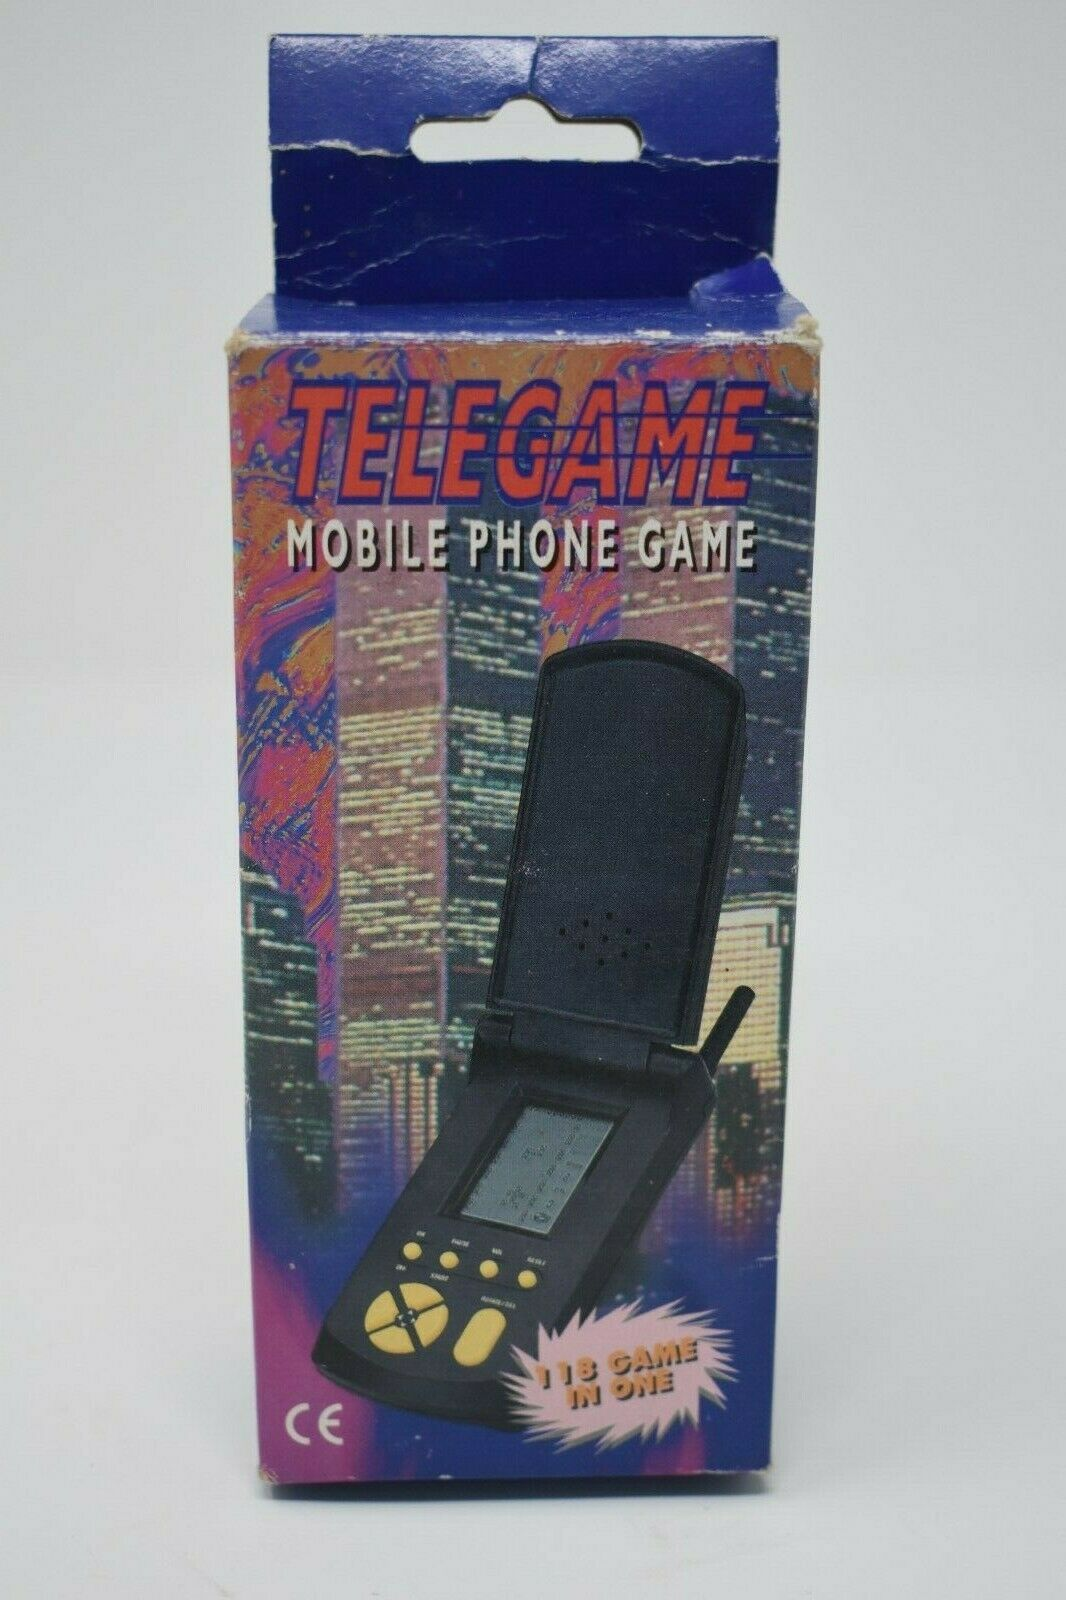 Vintage TELEGAME Mobile Phone Game 118 Game in One